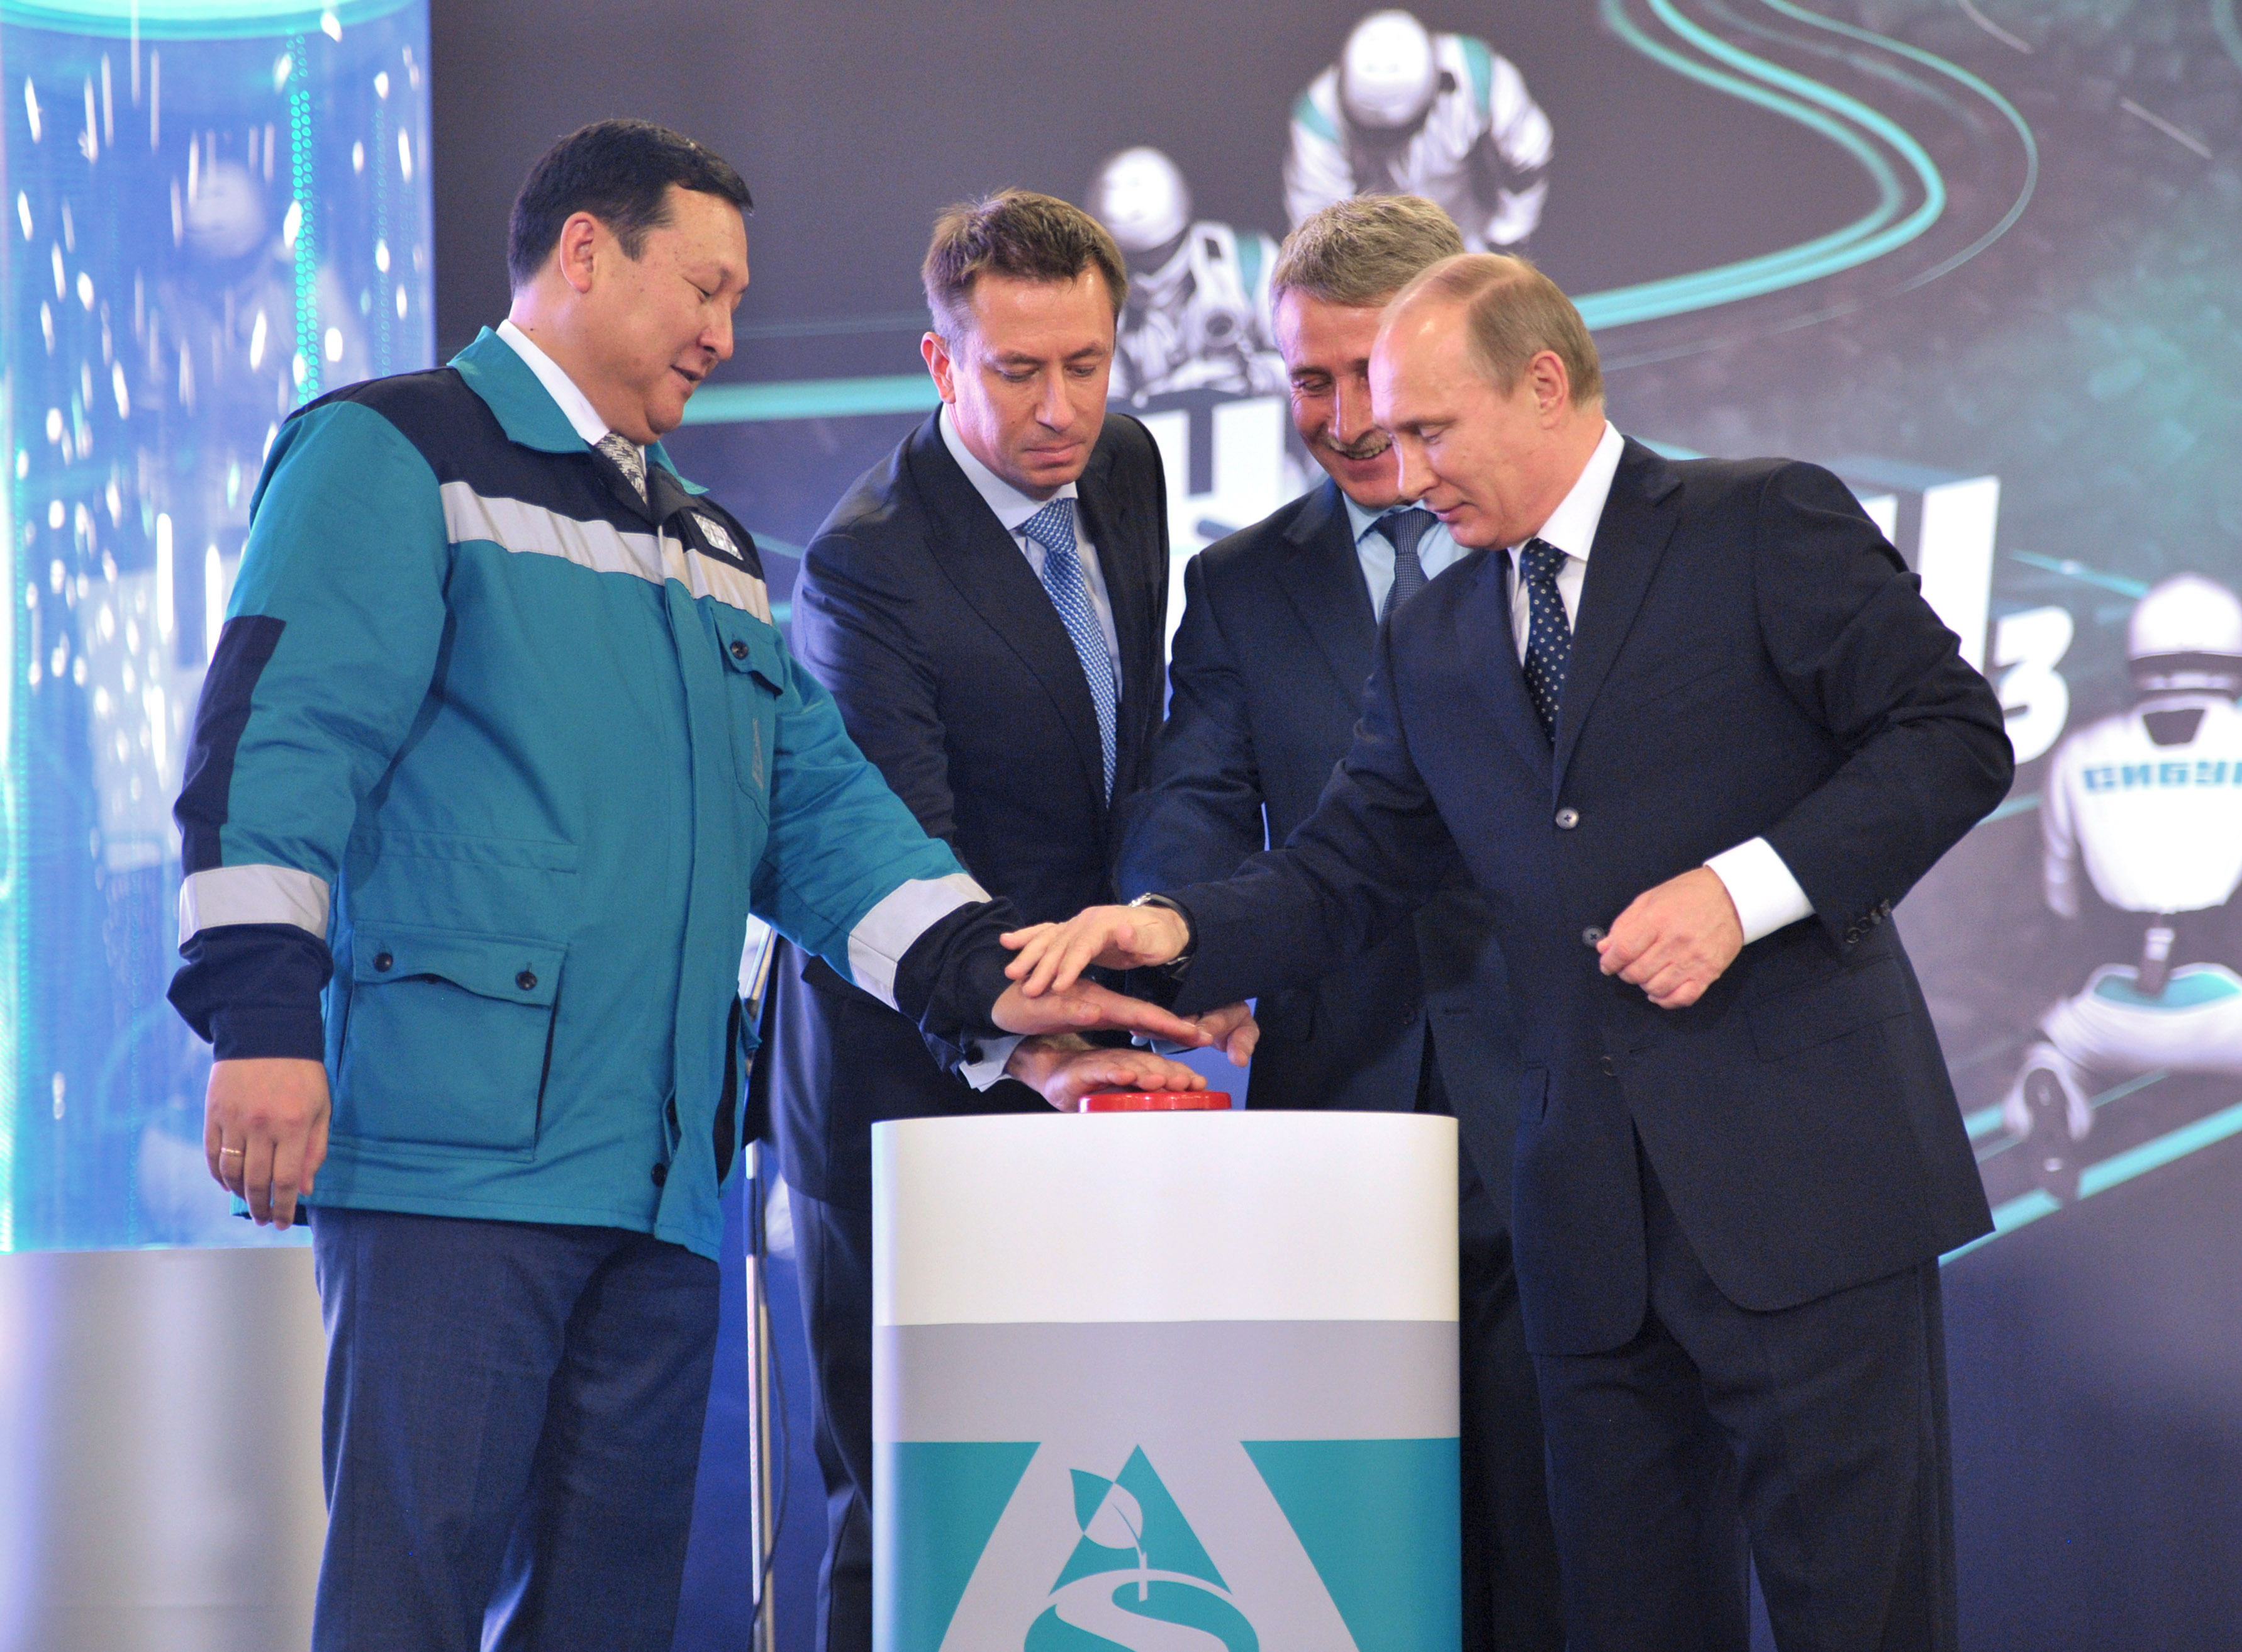 Novatek chairman of the board Leonid Mikhelson (2nd R) on October 15, 2013. Novatek, Russia's largest gas independent, agreed to supply 3 million tonnes per year of LNG to CNPC, one of the partners in its $20 billion project on the Arctic Yamal peninsula (AFP)